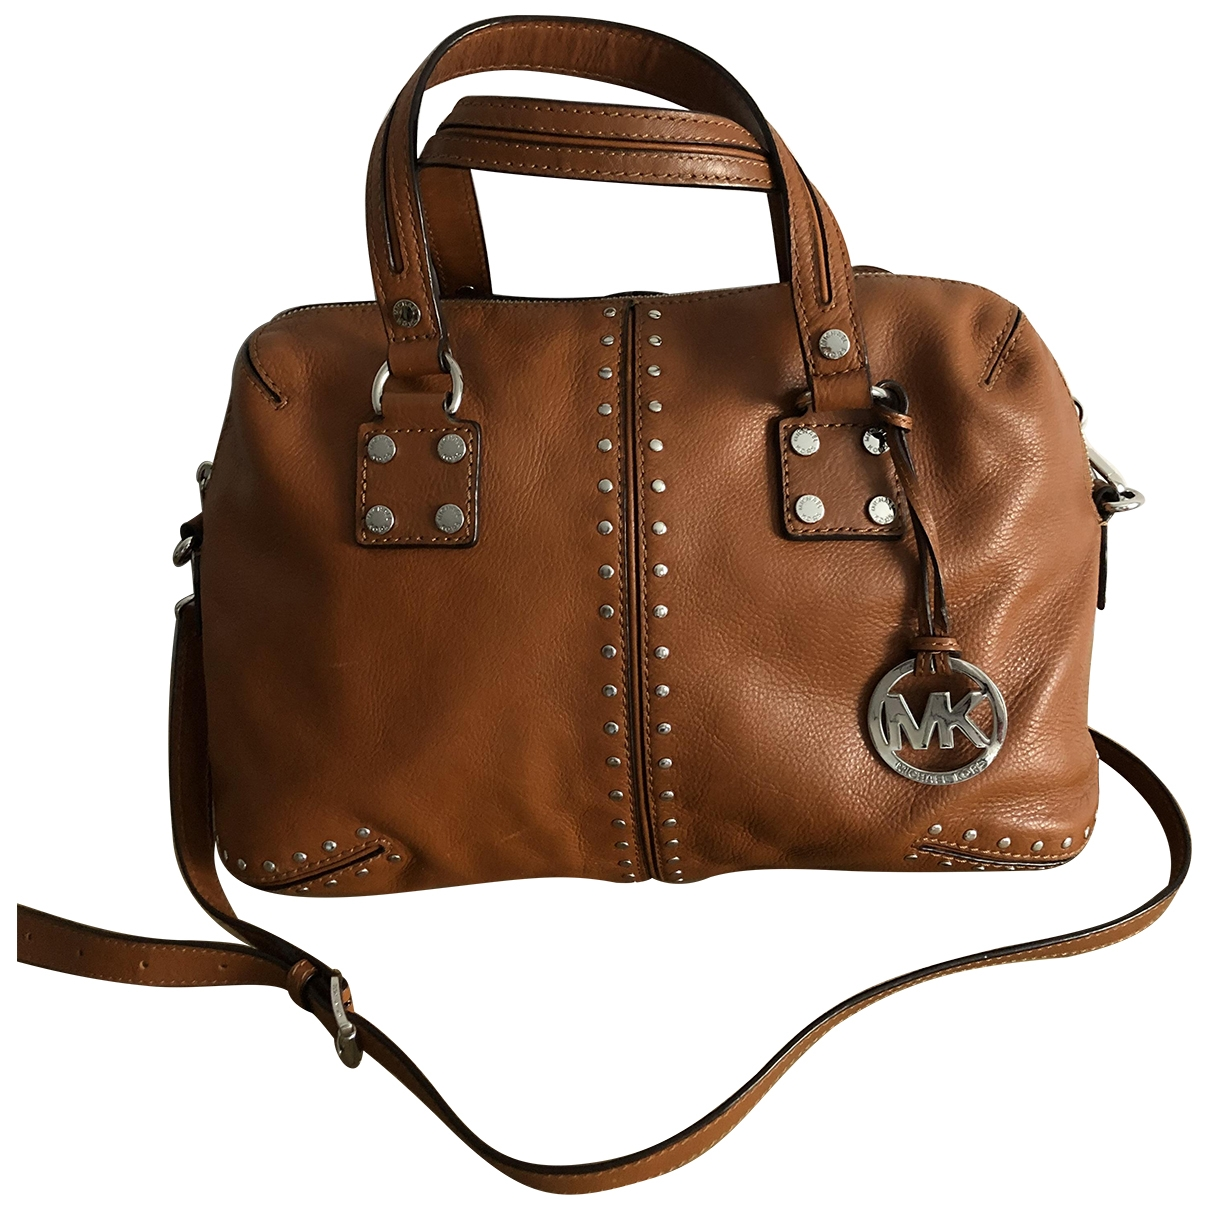 Michael Kors \N Brown Leather handbag for Women \N